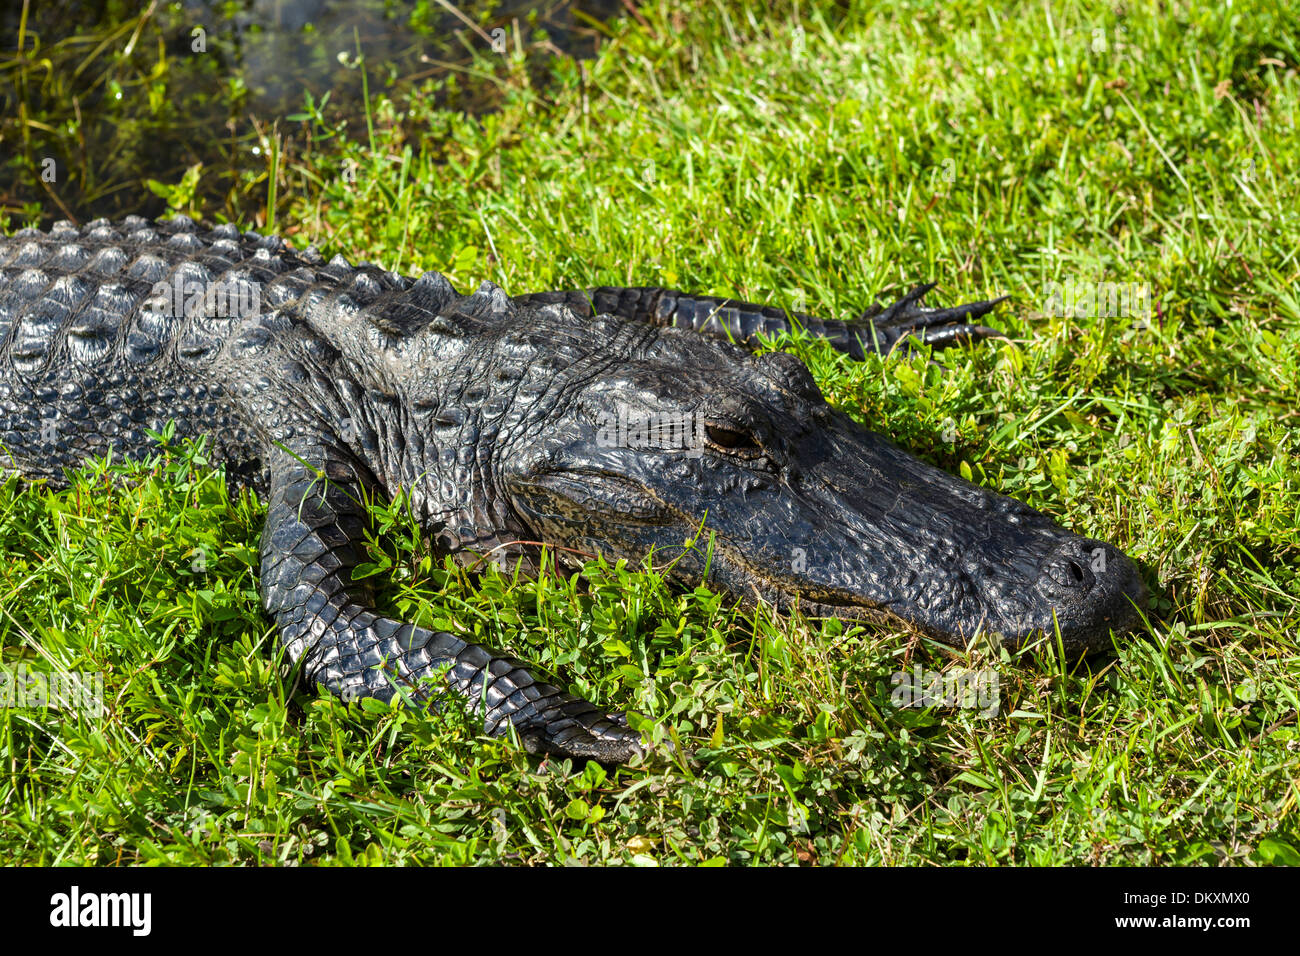 American Alligator (Alligator mississippiensis) on the Shark Valley loop road, Everglades National Park, Southern Florida, USA - Stock Image